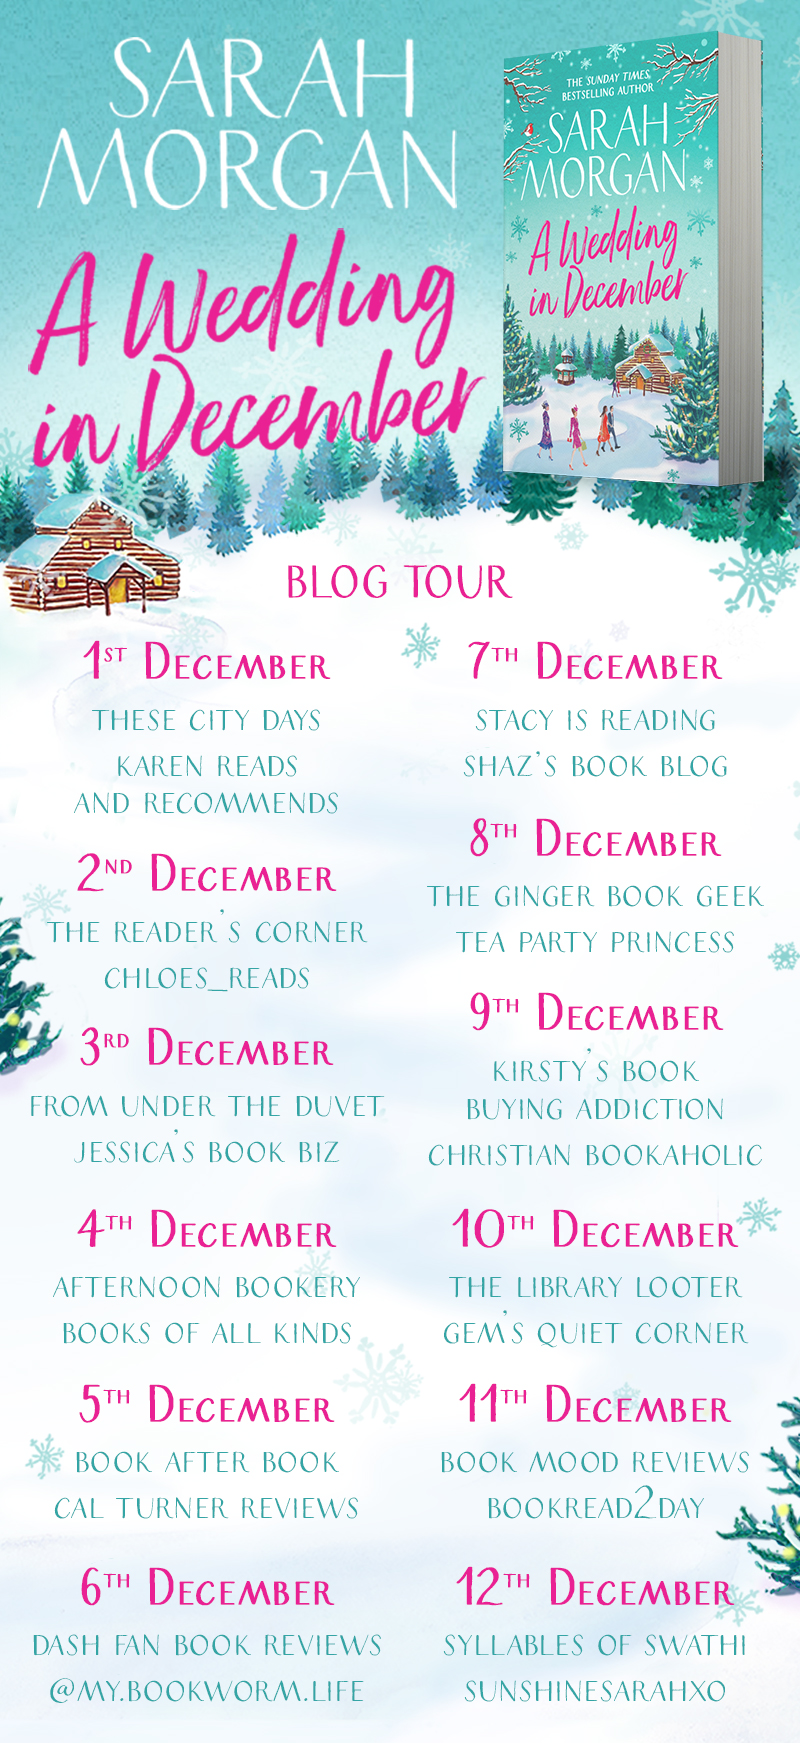 A Wedding in December Blog Tour Banner